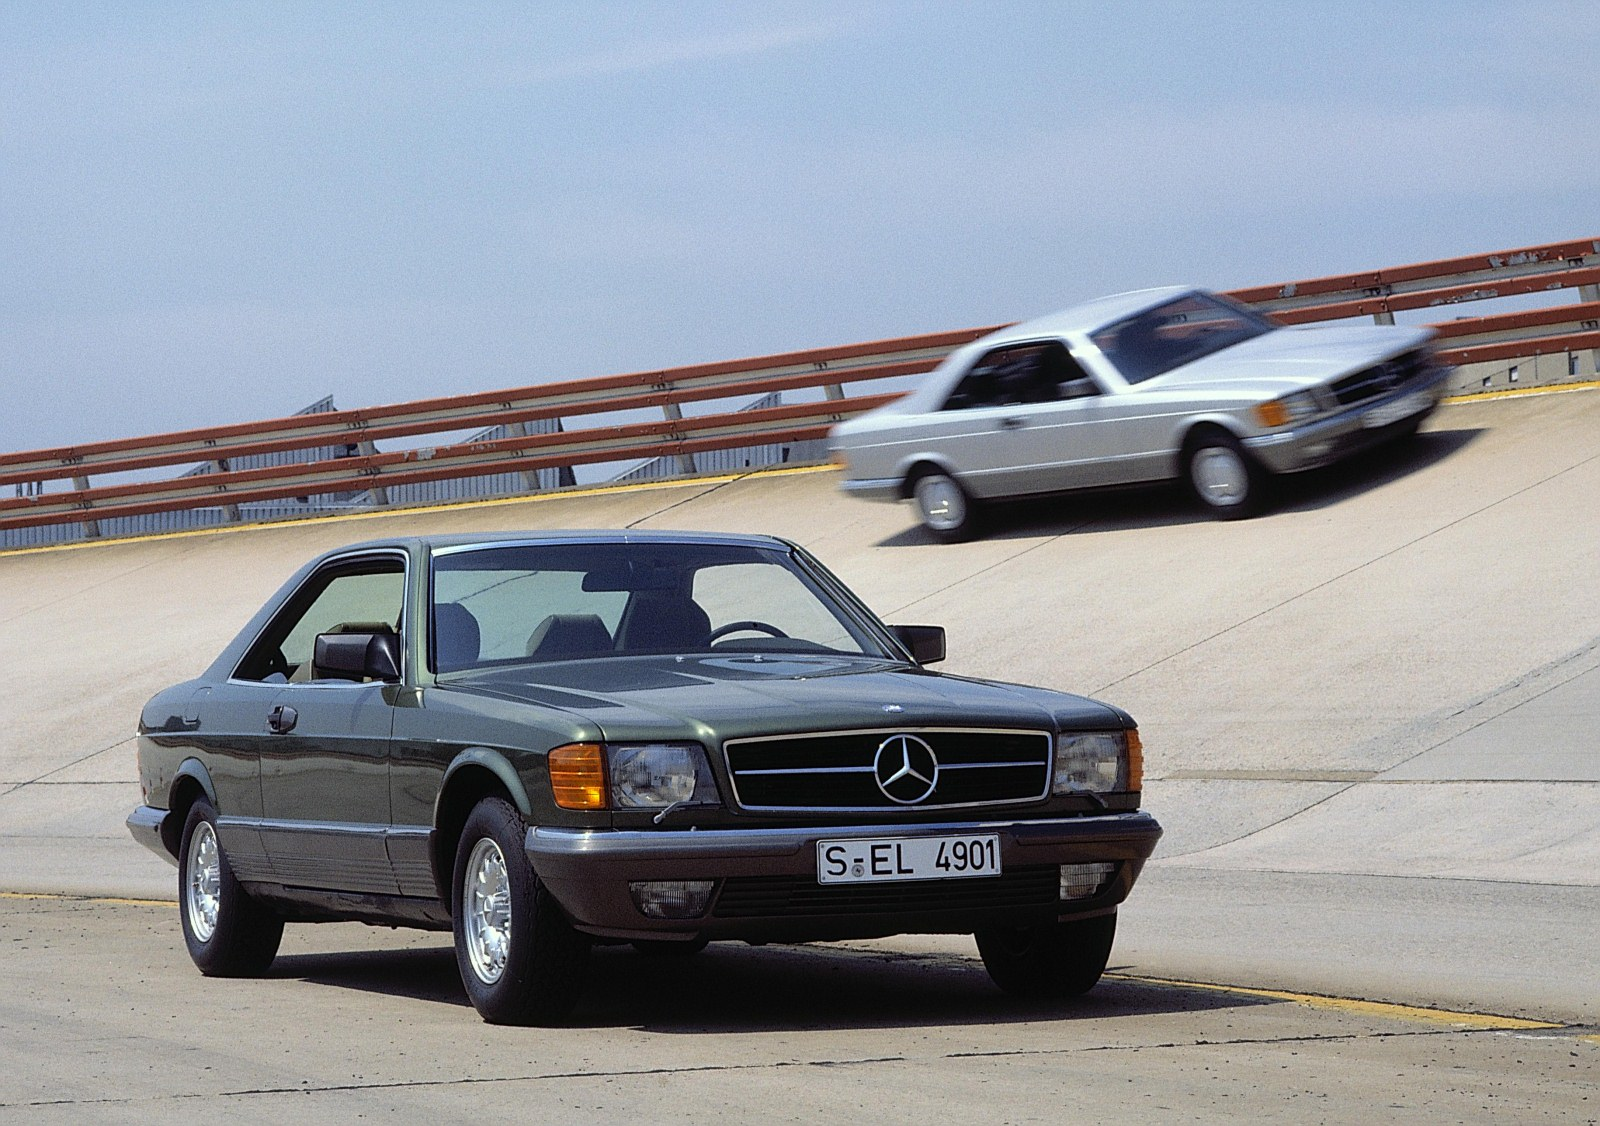 1990 Mercedes S Klasse Coupe C126 Pictures Information And Benz W123 Wiring Diagram Pics 9